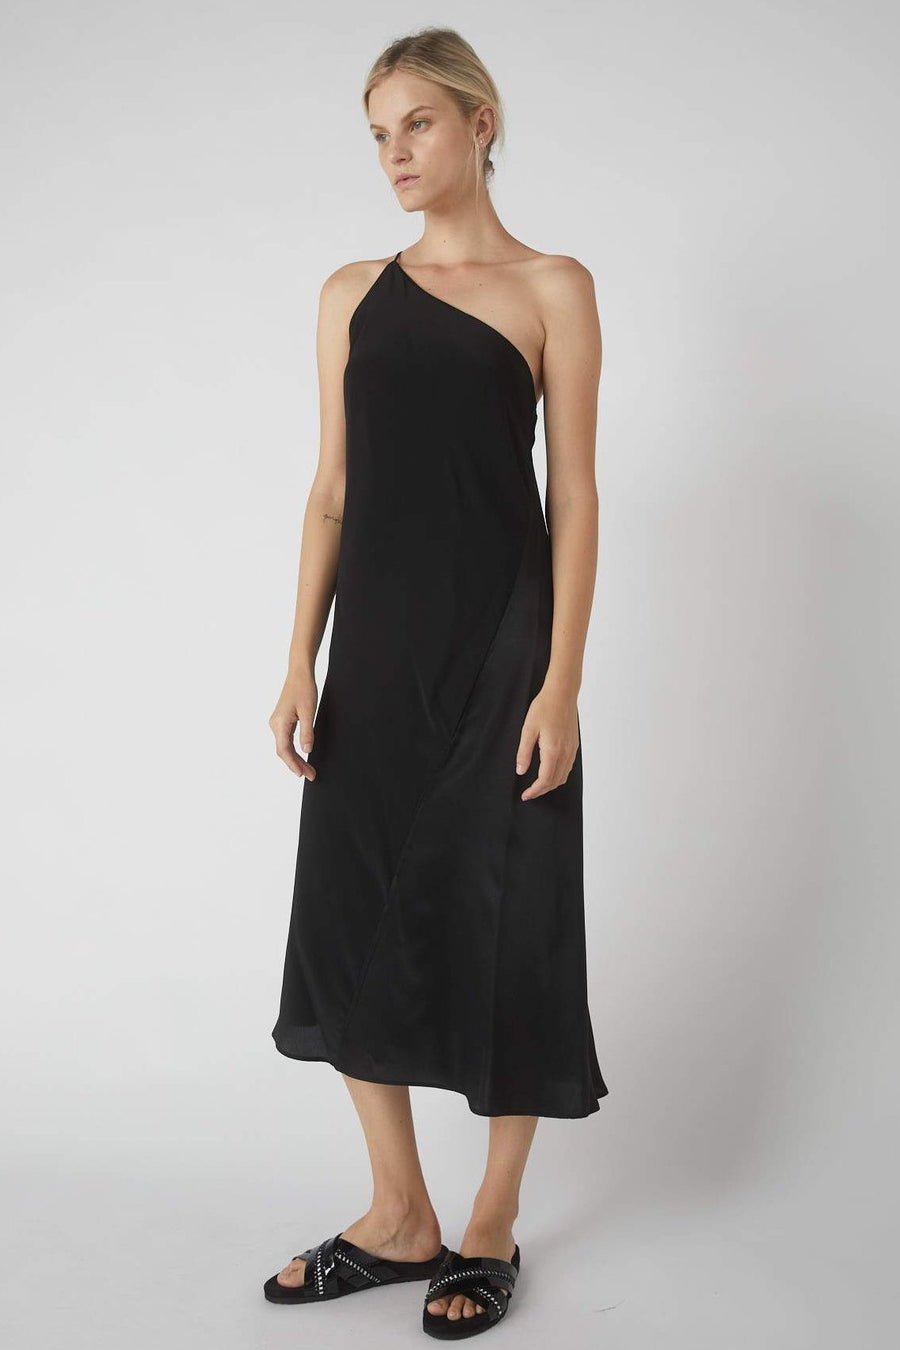 Duo One-Symmetrical Dress / Black